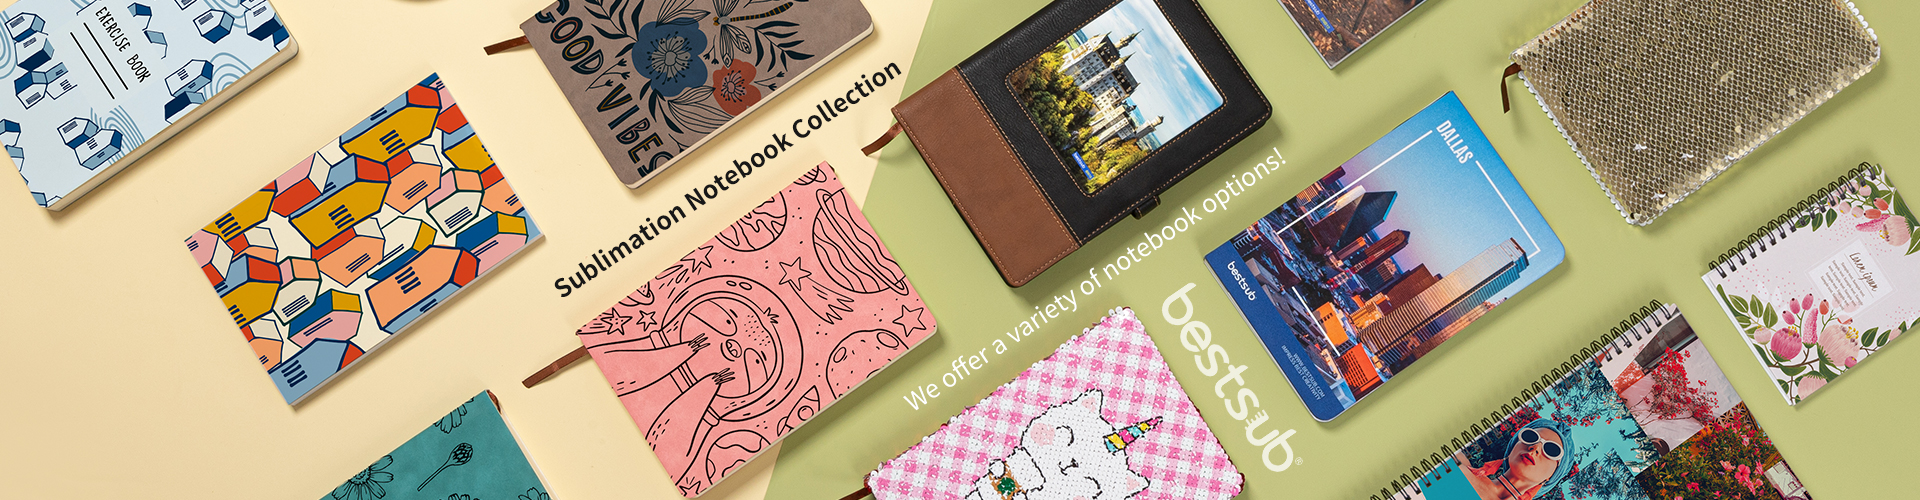 2021-07-16_Sublimation_Notebook_Collection_new_web